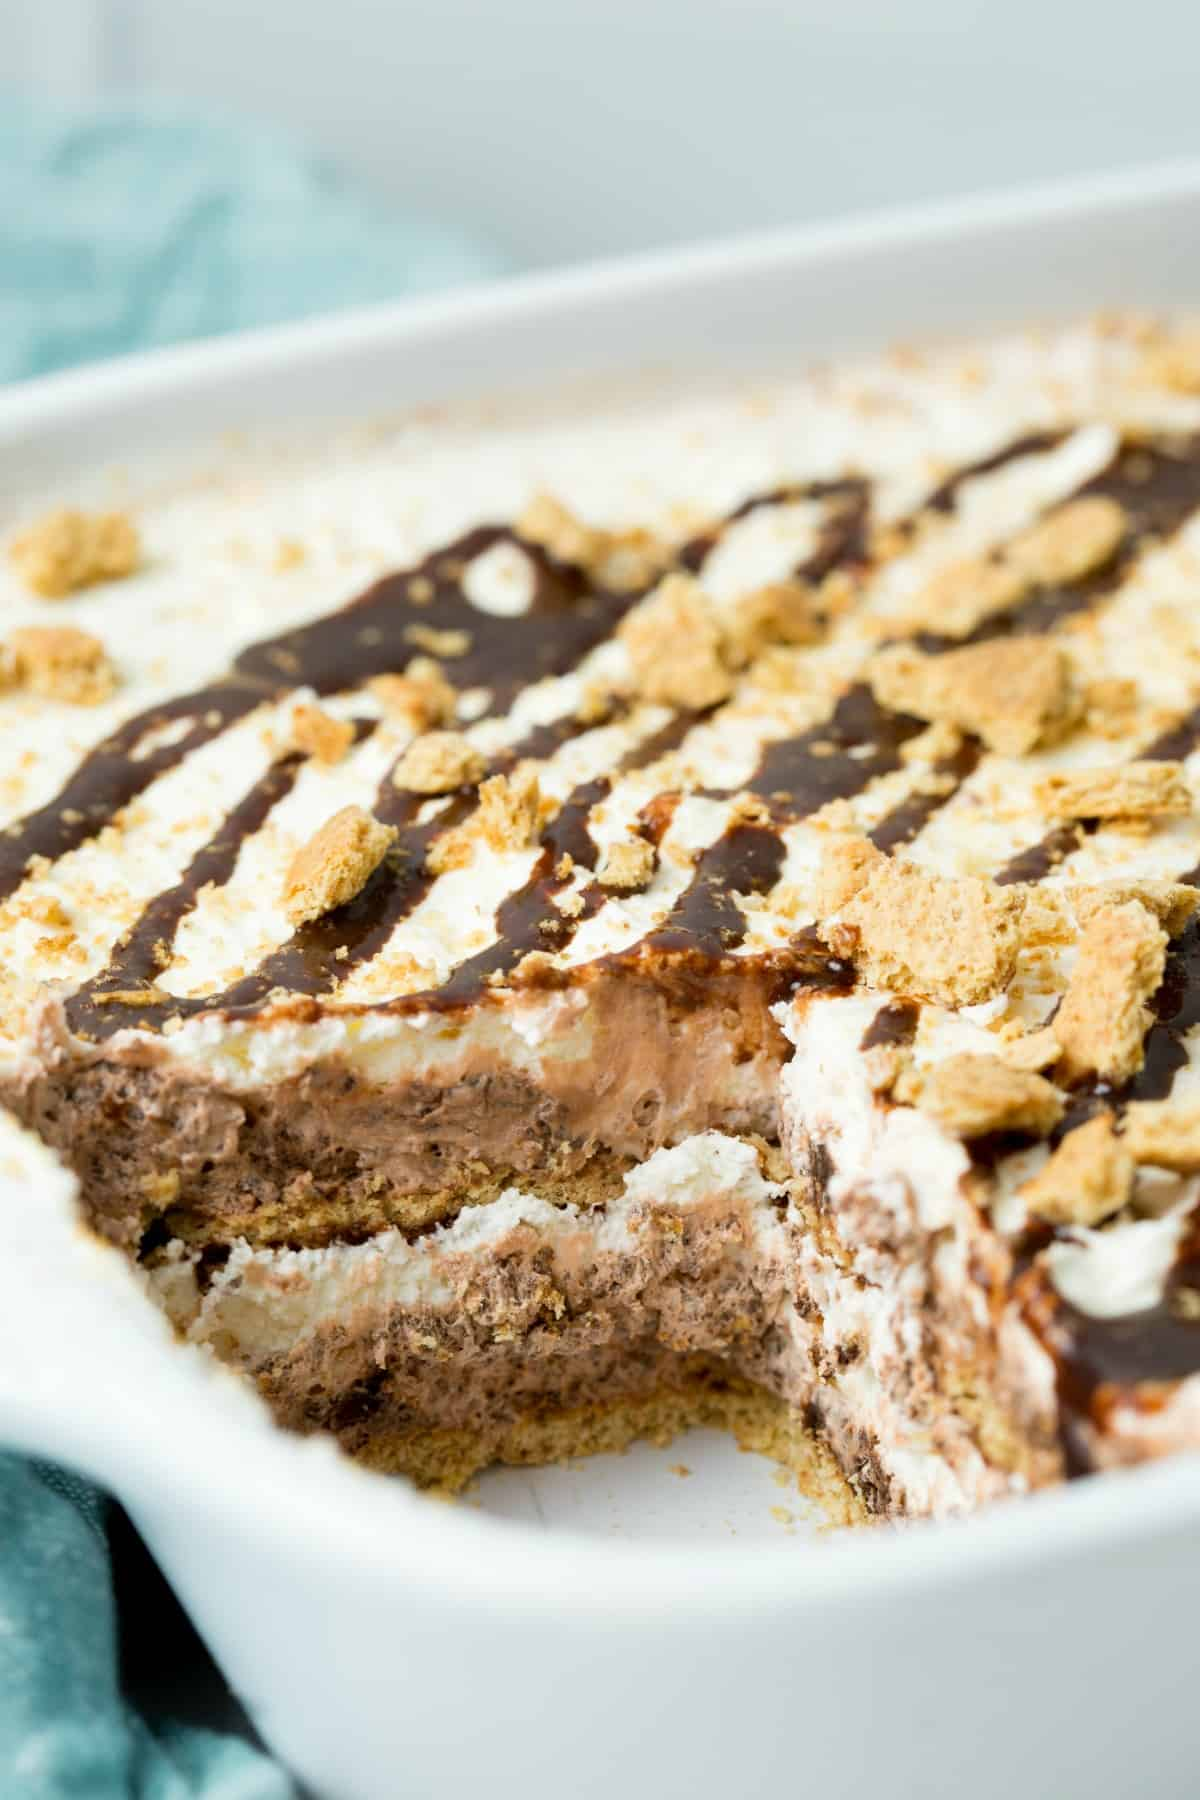 Slice removed from a white baking dish, and the layers of a smores icebox cake can be seen.